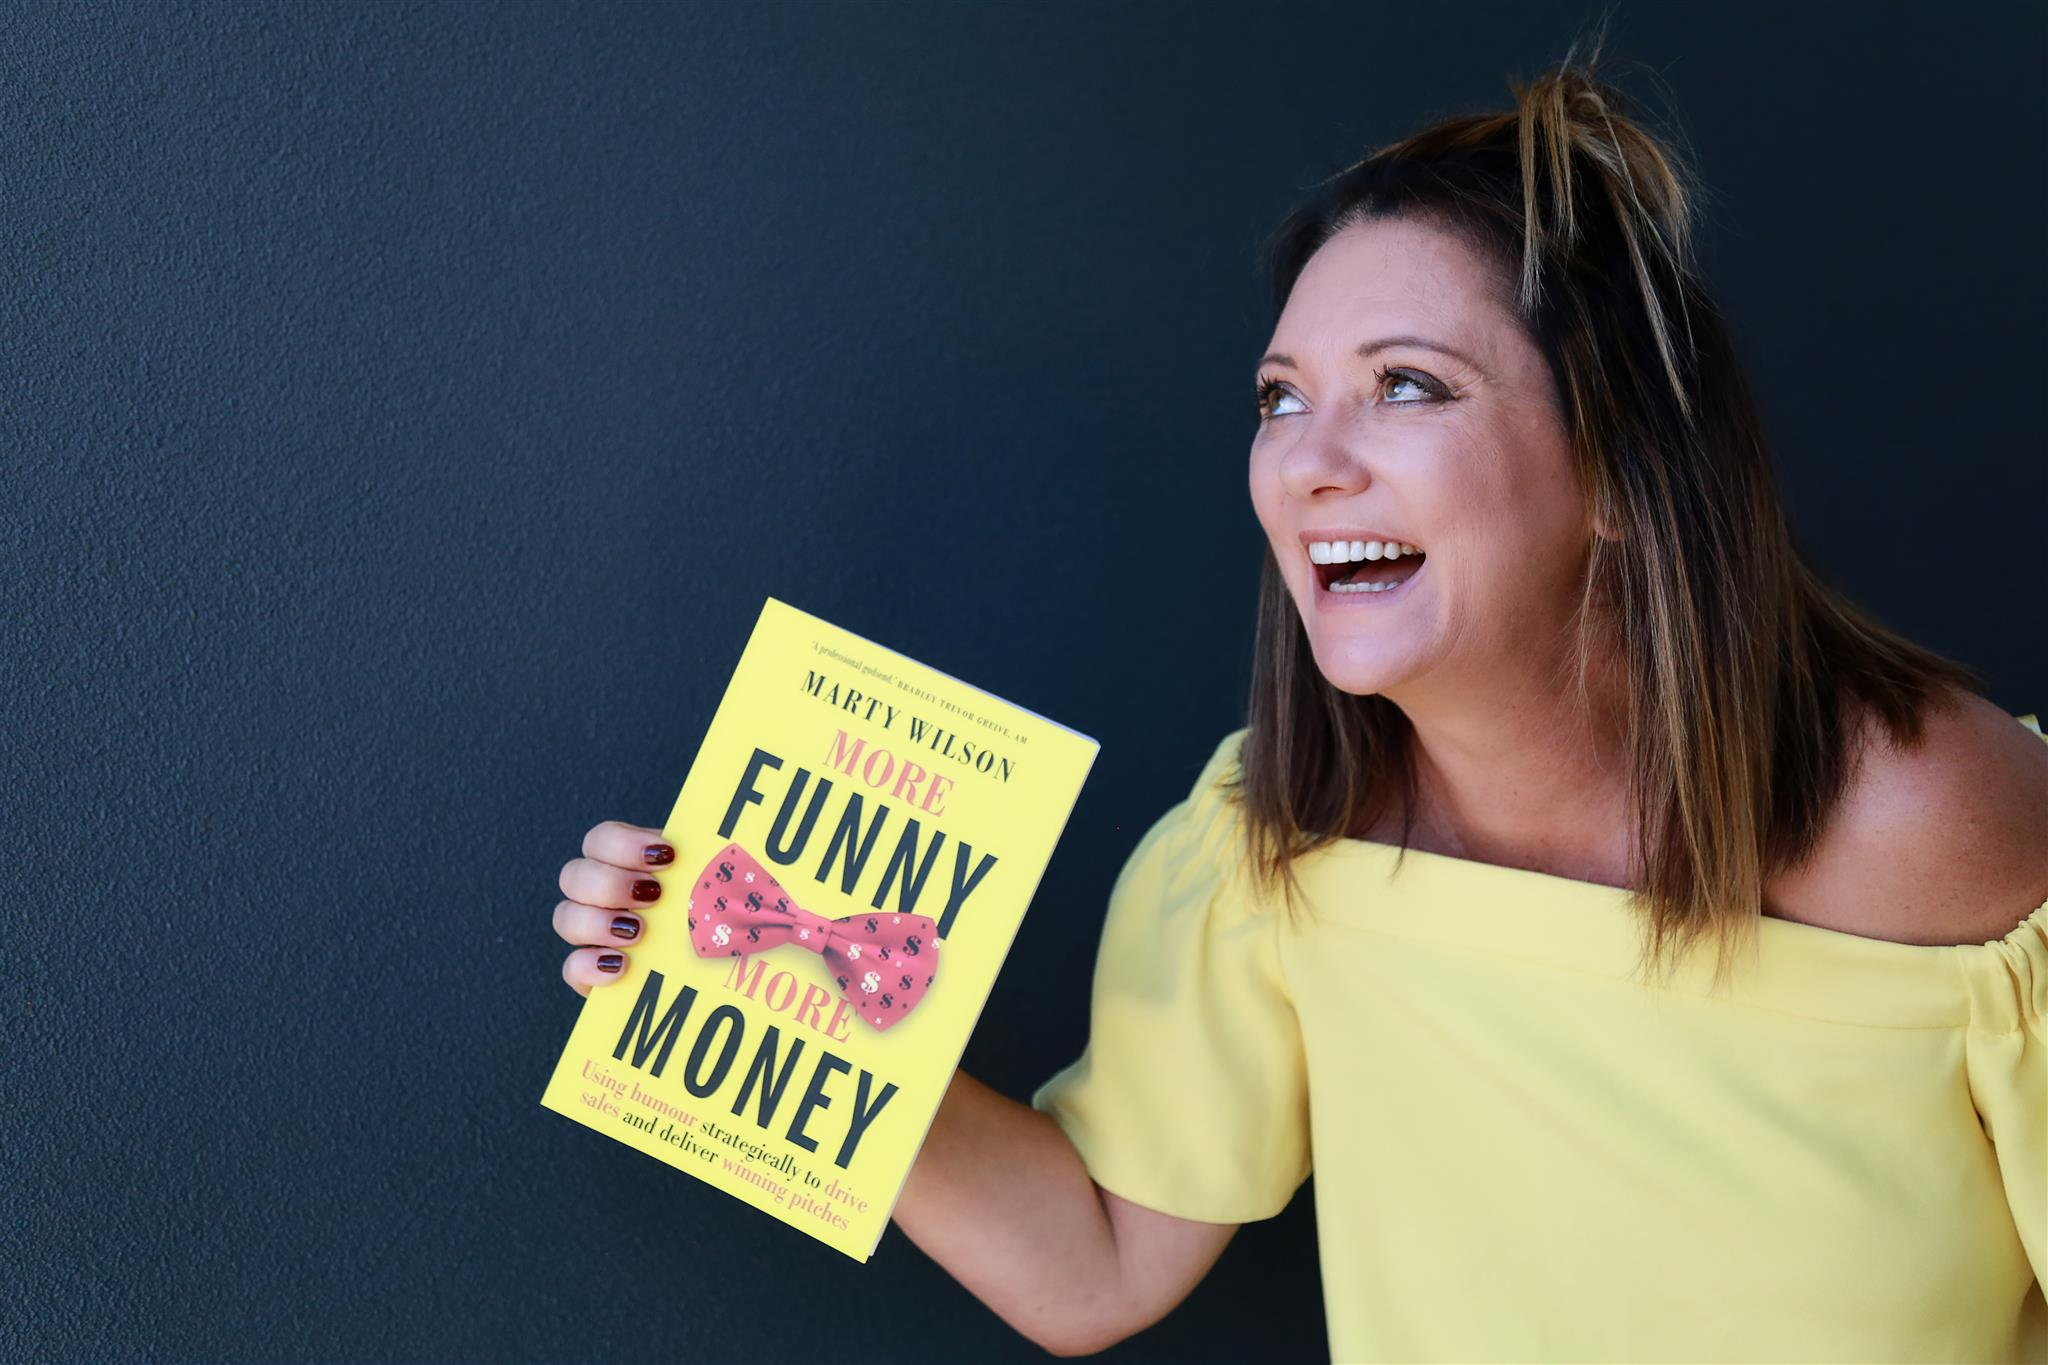 More Money More Funny by Marty Wilson